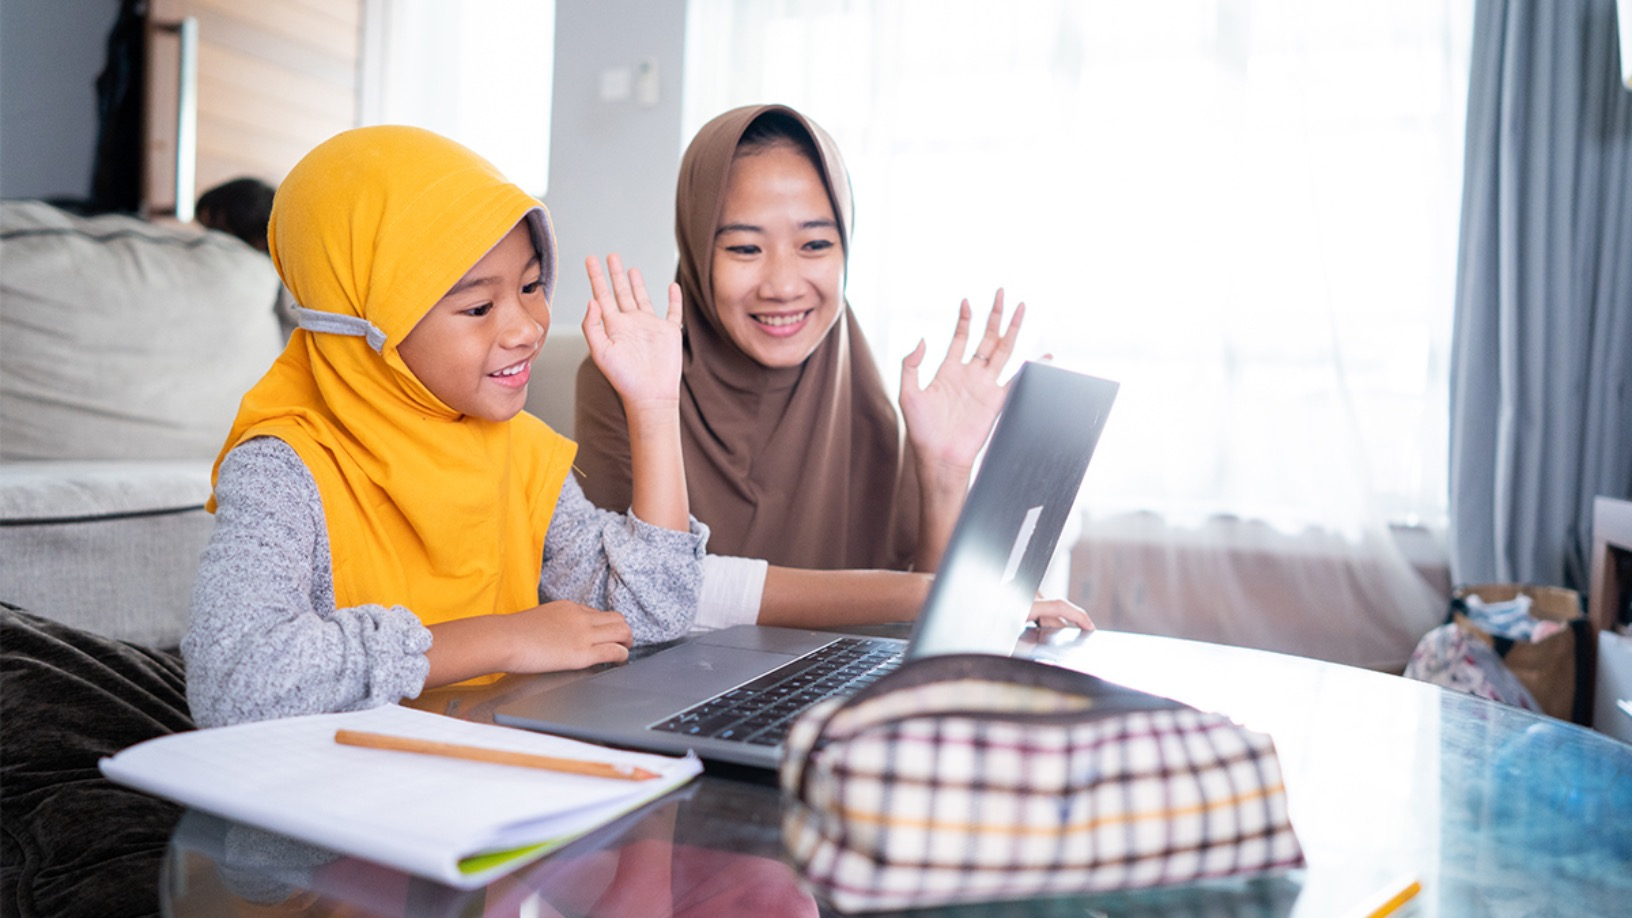 Indonesian edtechs attract funding even as students head back to school